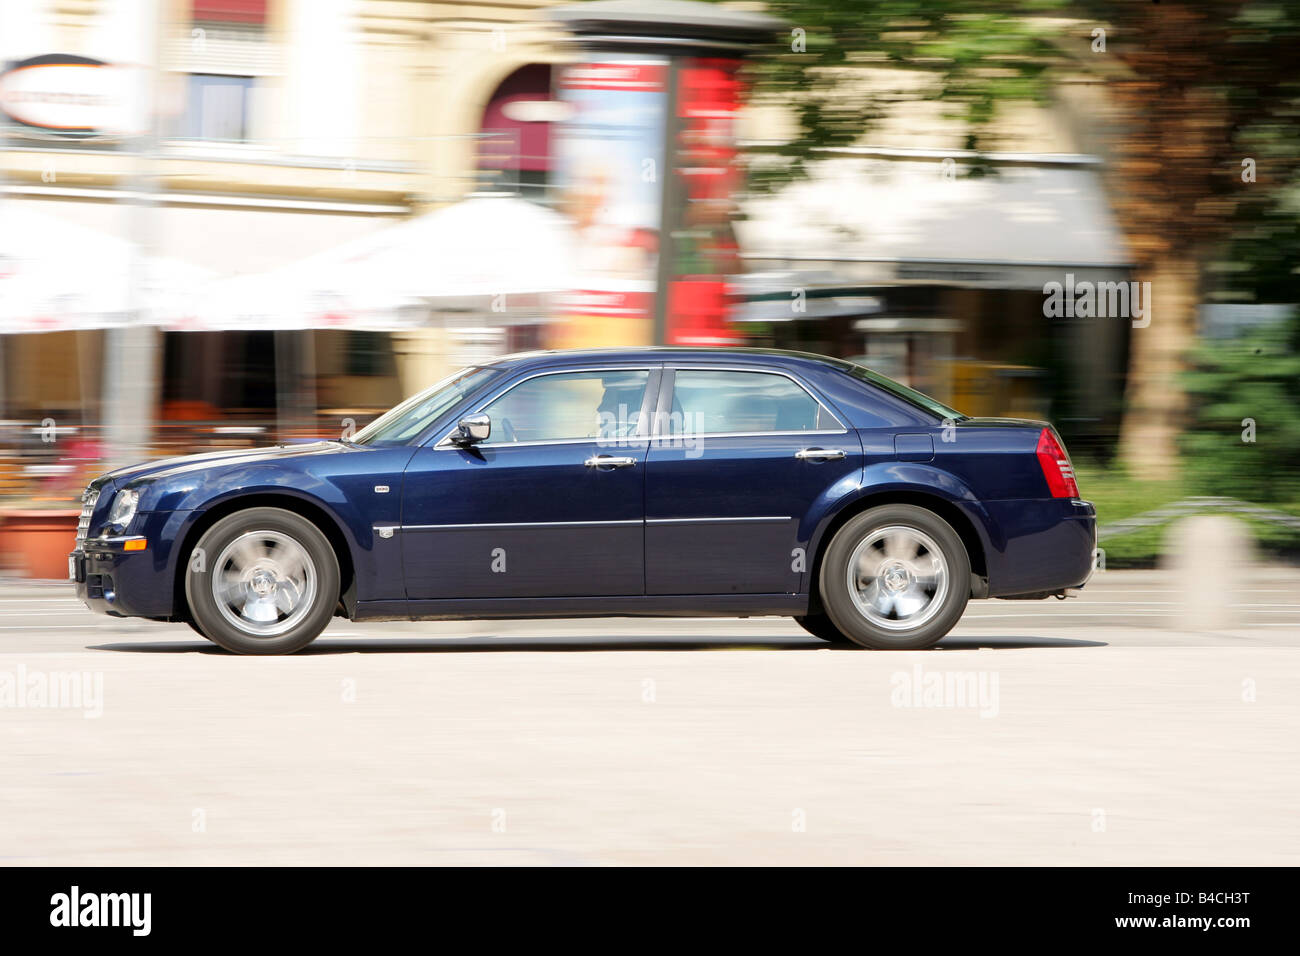 review hemi reviews carsguide back large car is chrysler